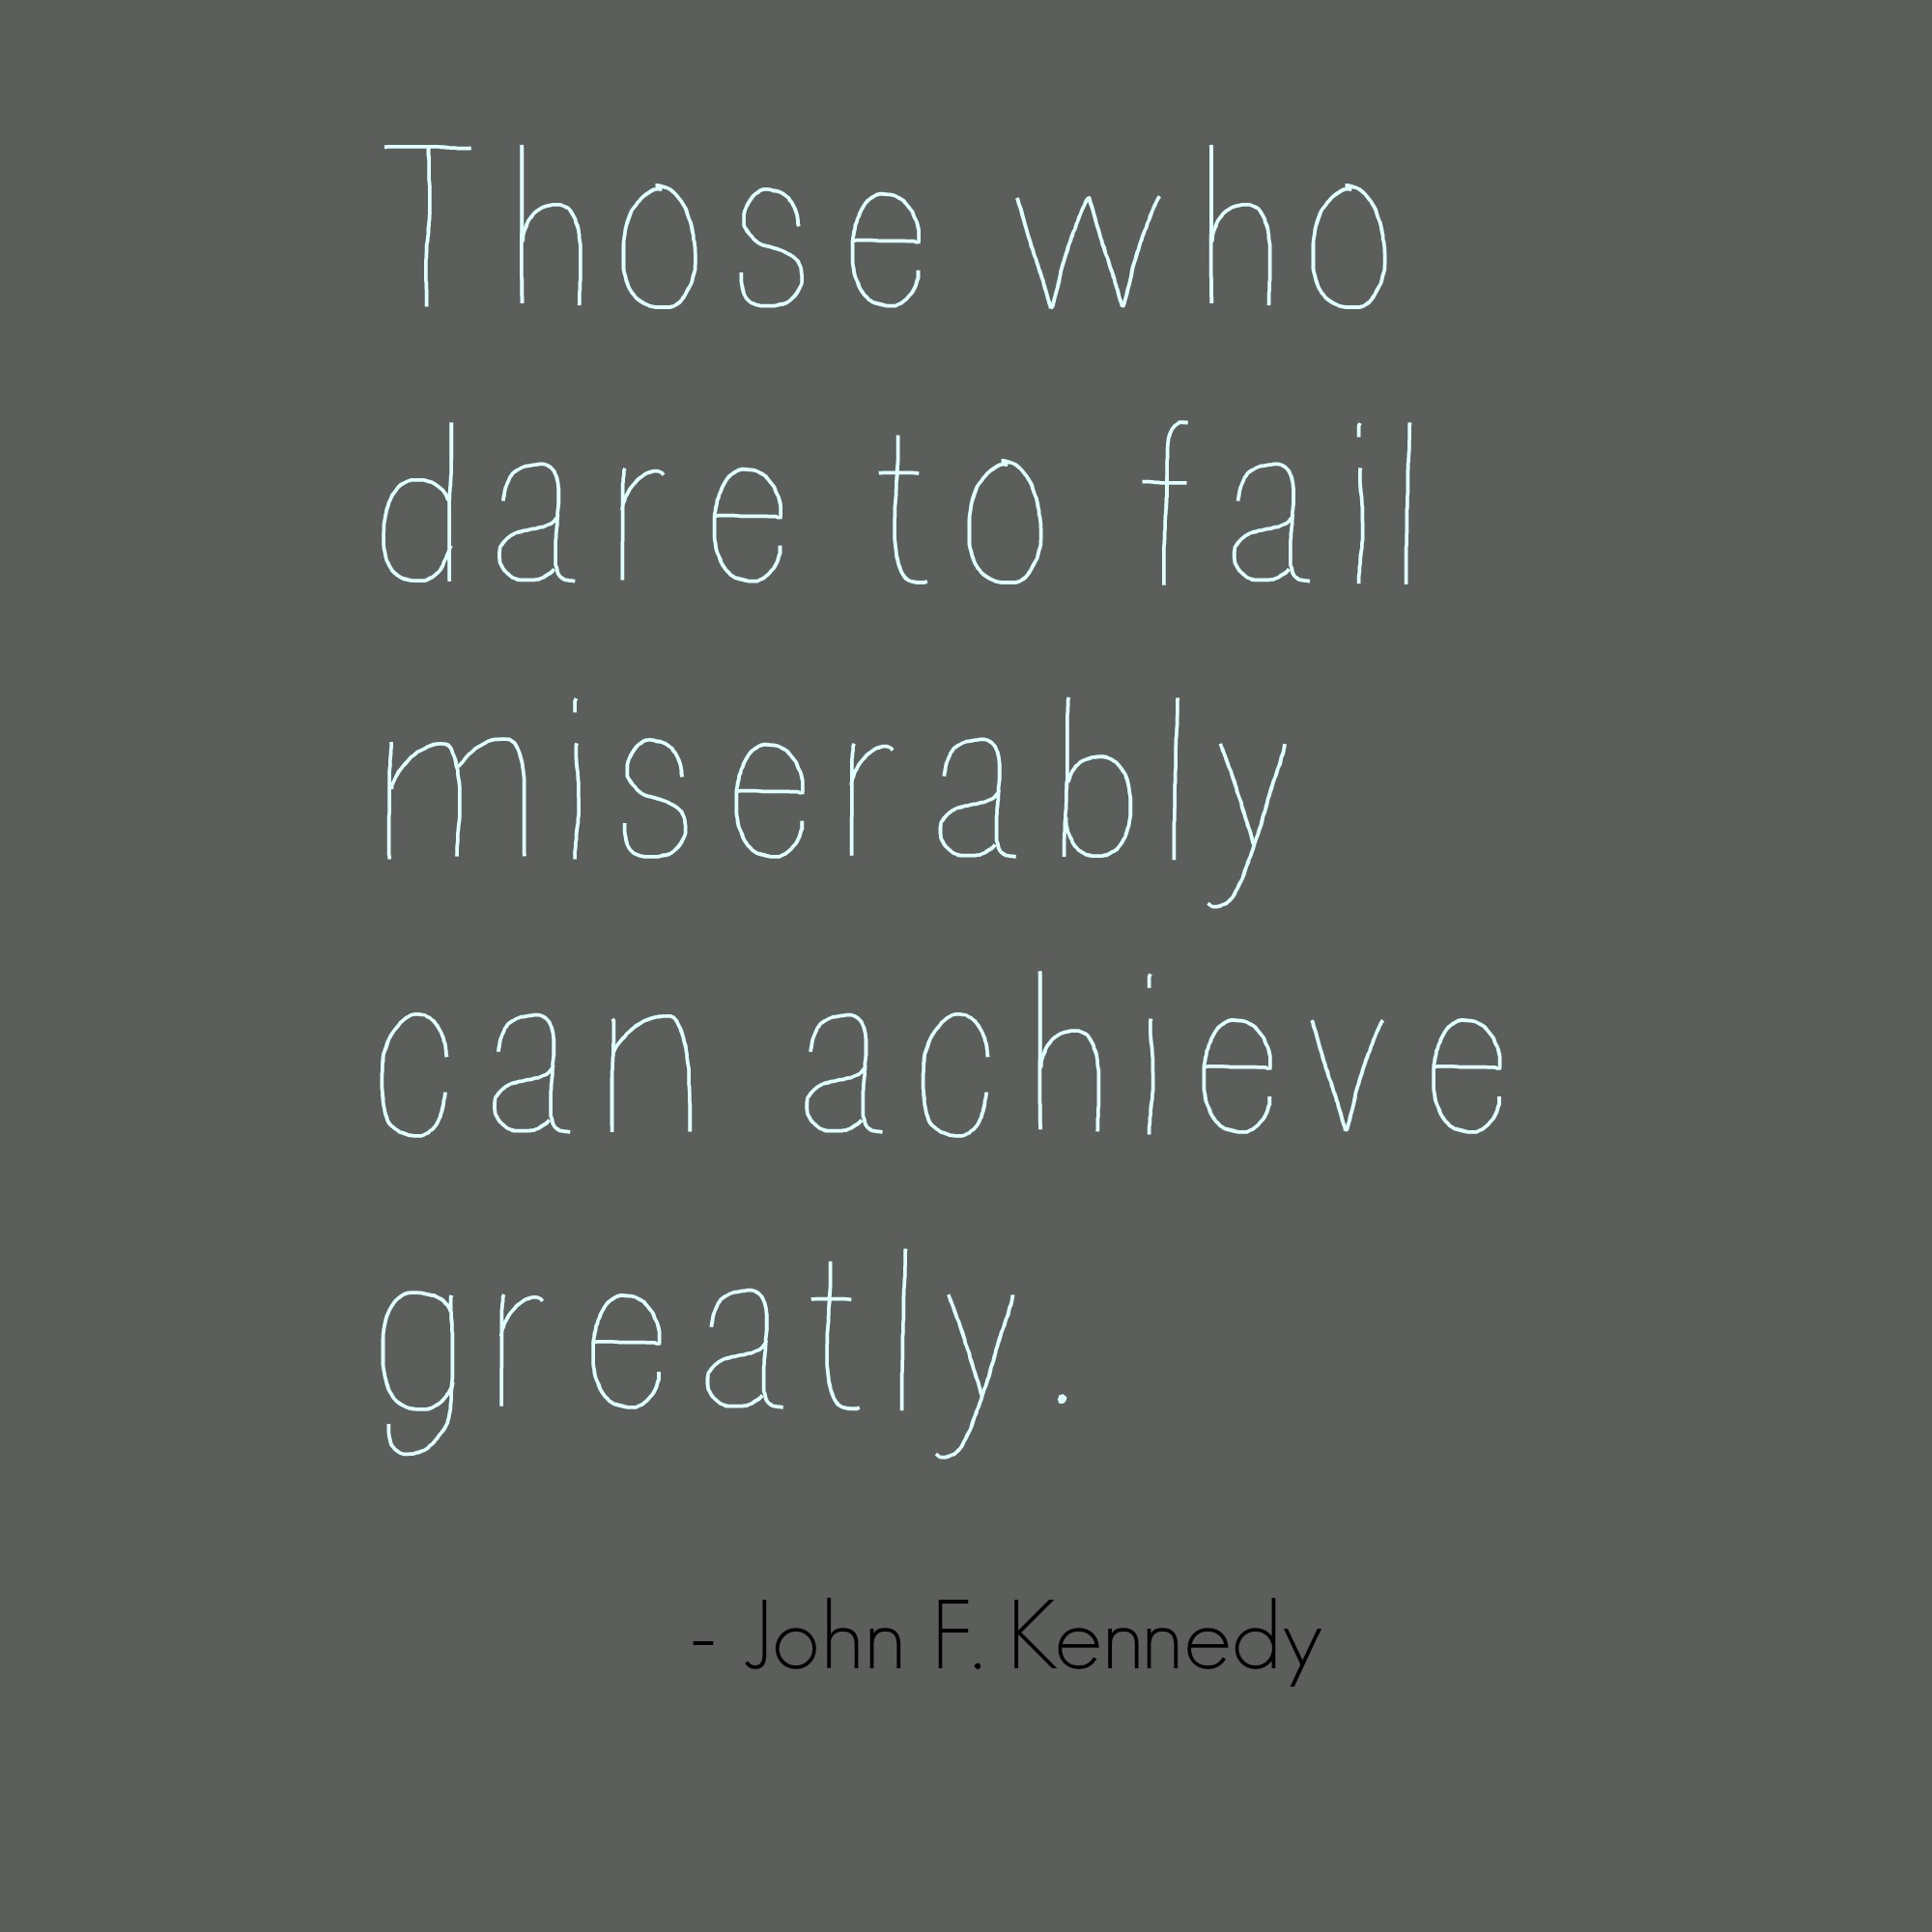 achieve greatly